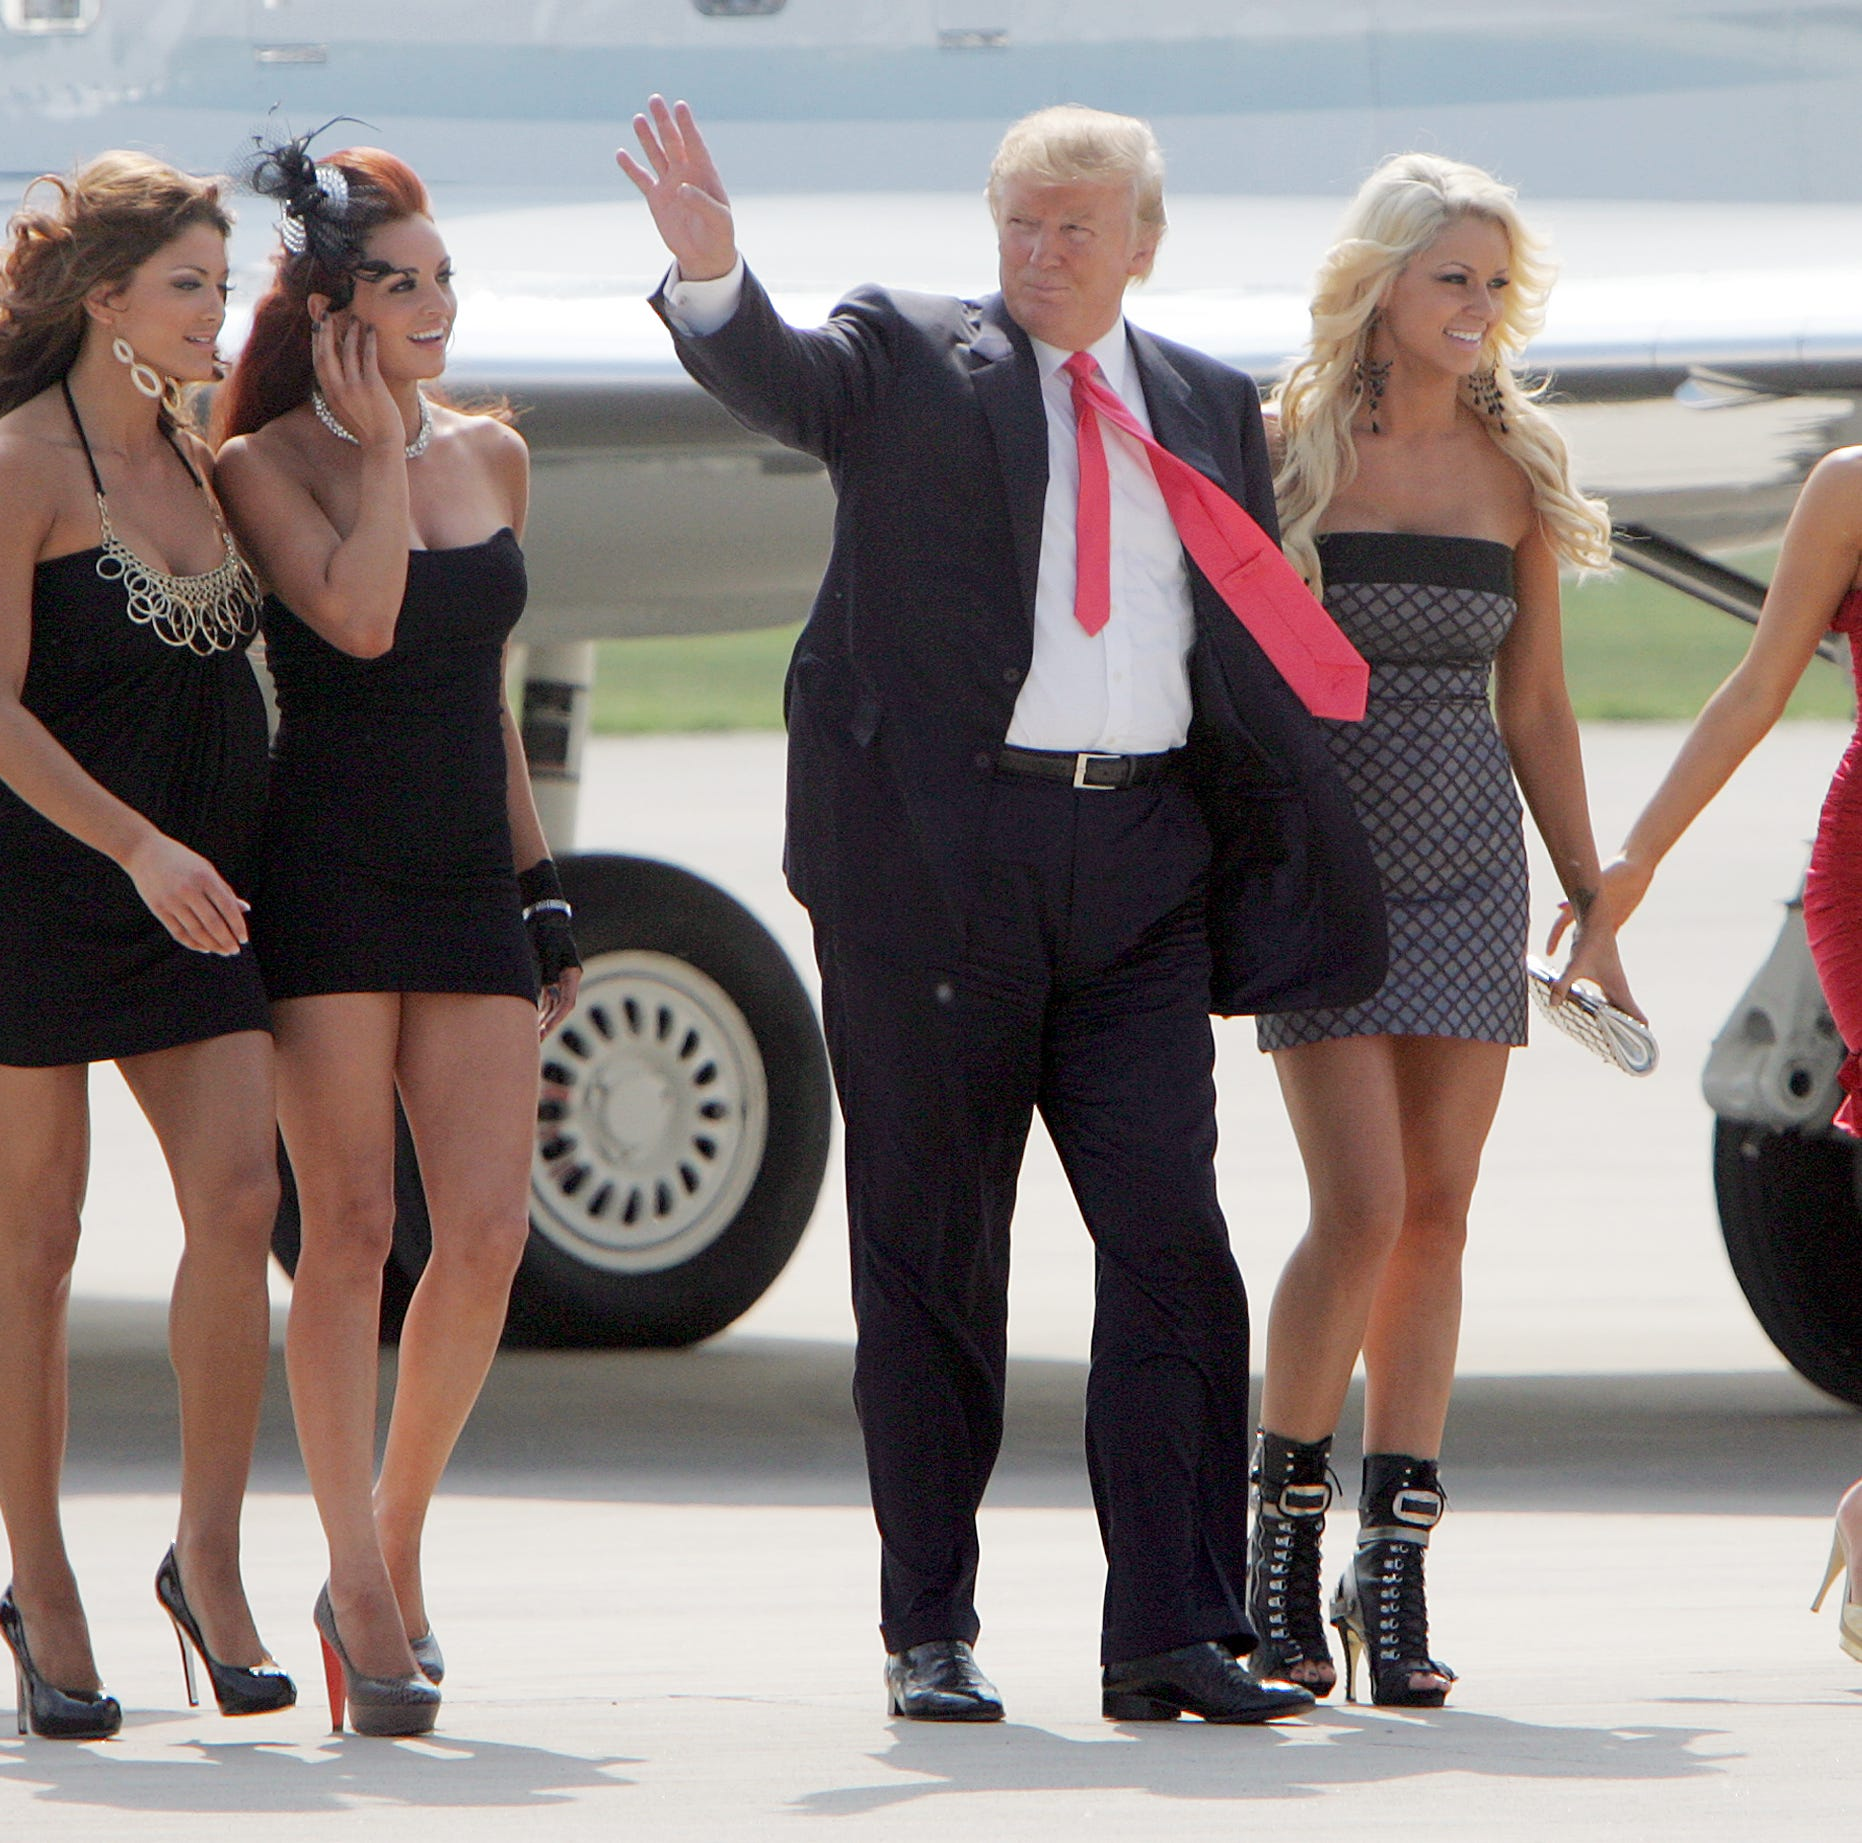 Donald Trump first visited Green Bay 10 years ago, and it was a much different time